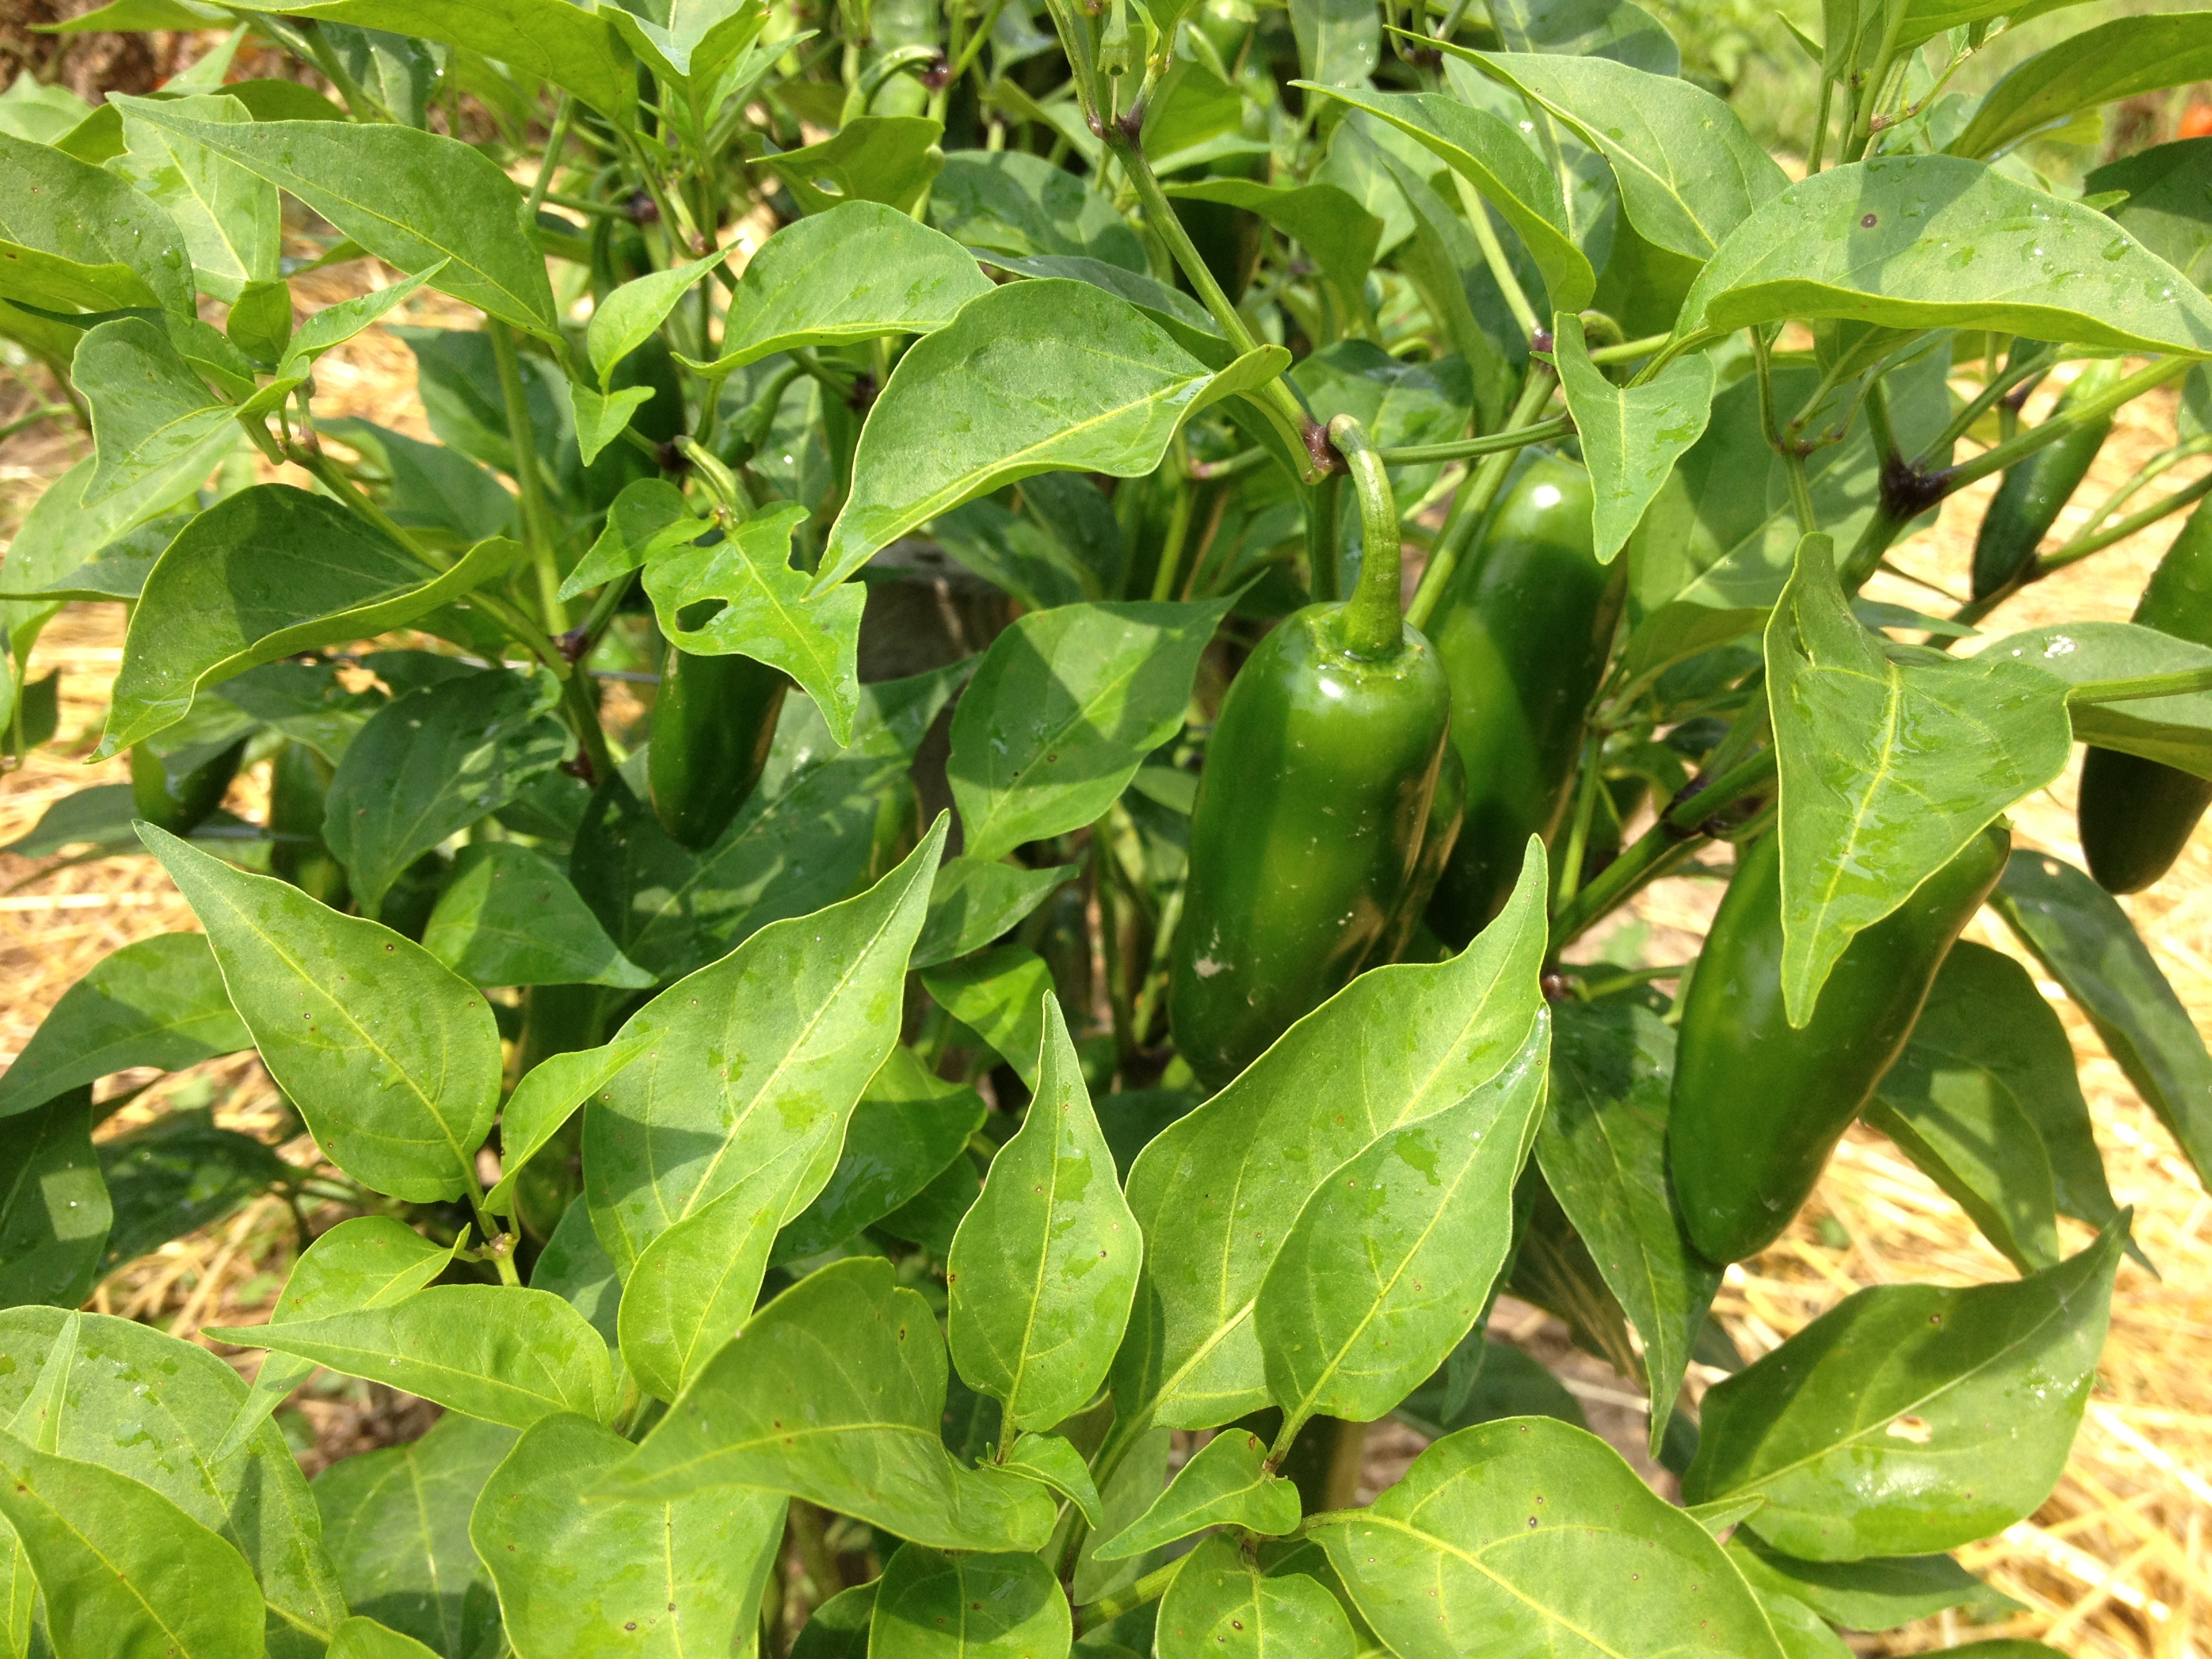 Jalapeno pepper plant leaves